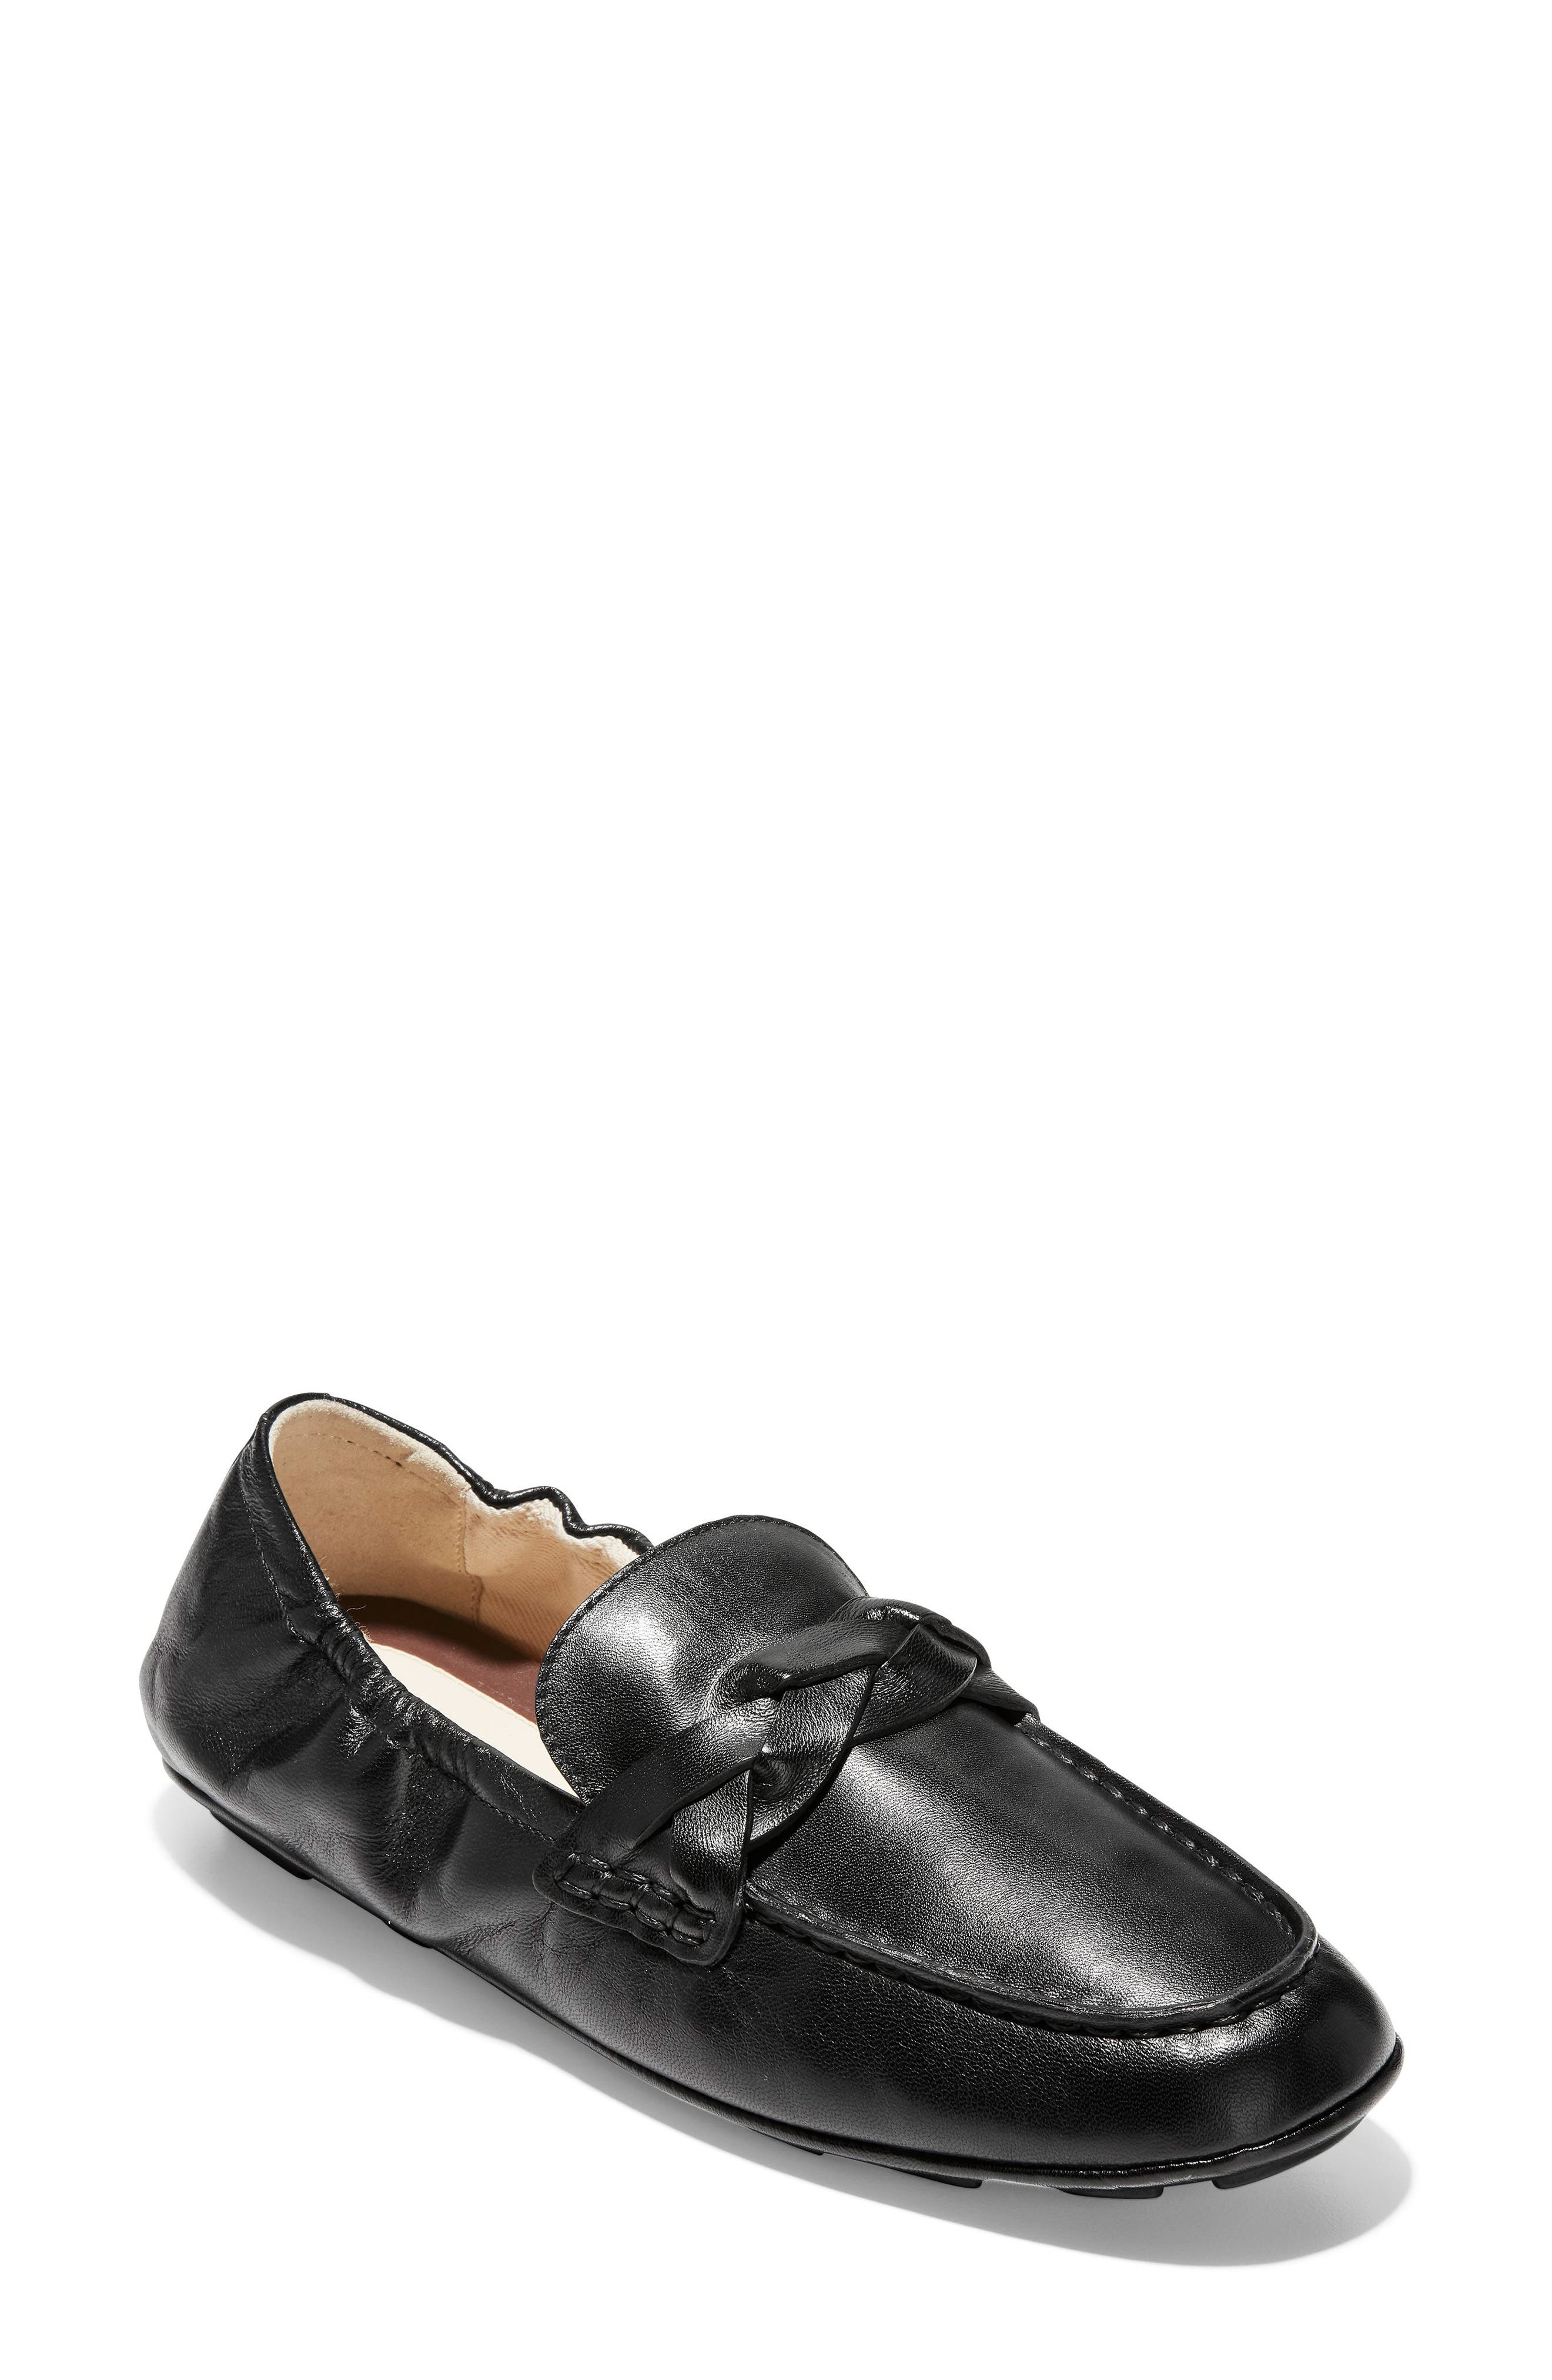 Cole Haan Odette Loafer, Black